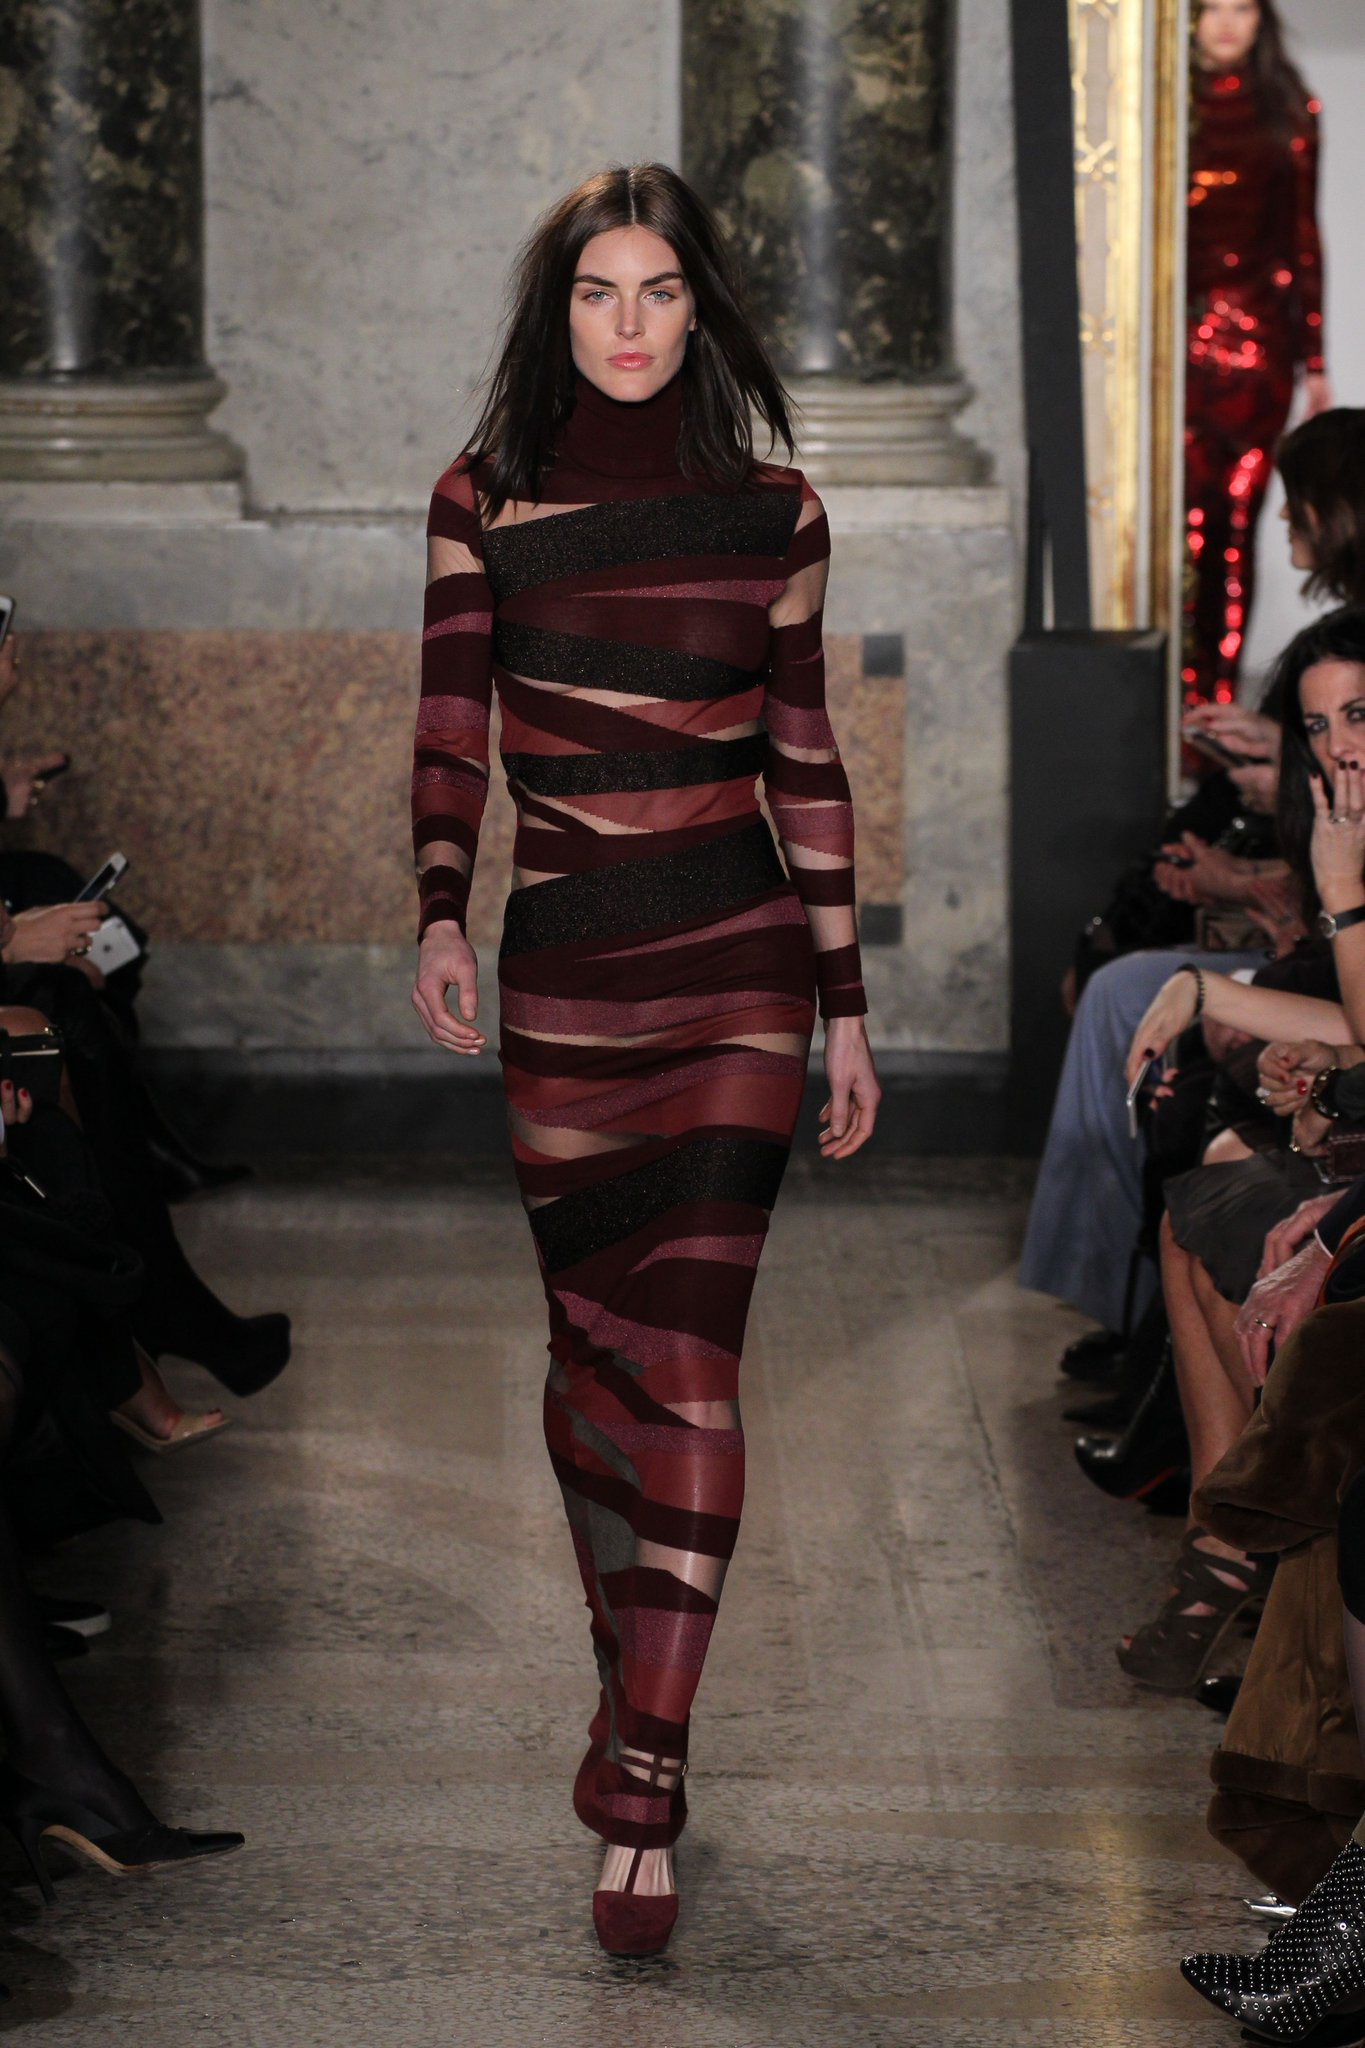 You NEED to see Emilio Pucci's super sexy collection http://t.co/urdxjYzvGP http://t.co/95V9Rwr98v